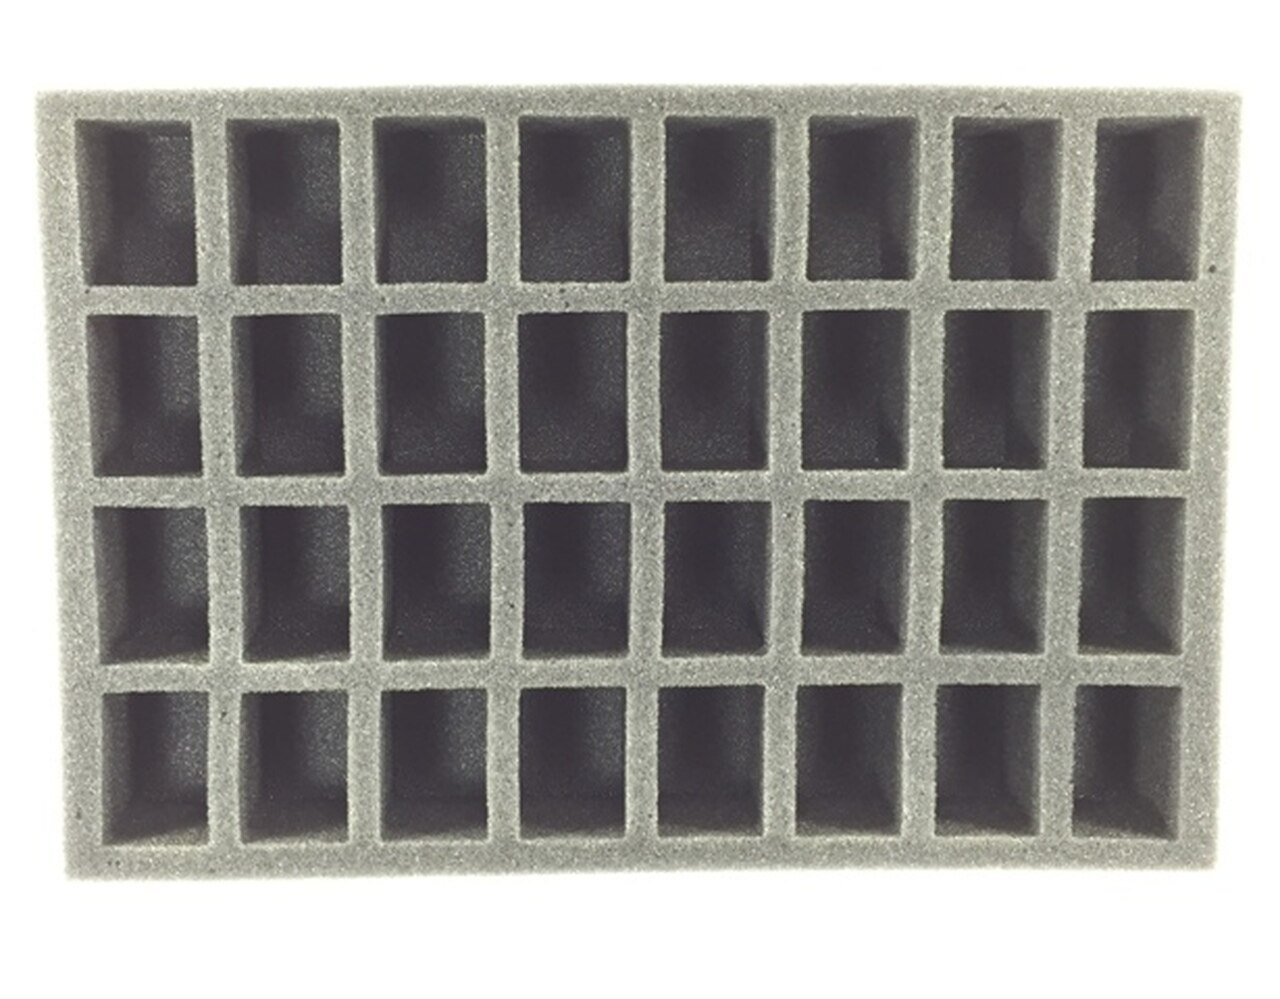 Battlefoam: 32 Troop Foam Tray (BFS-2)